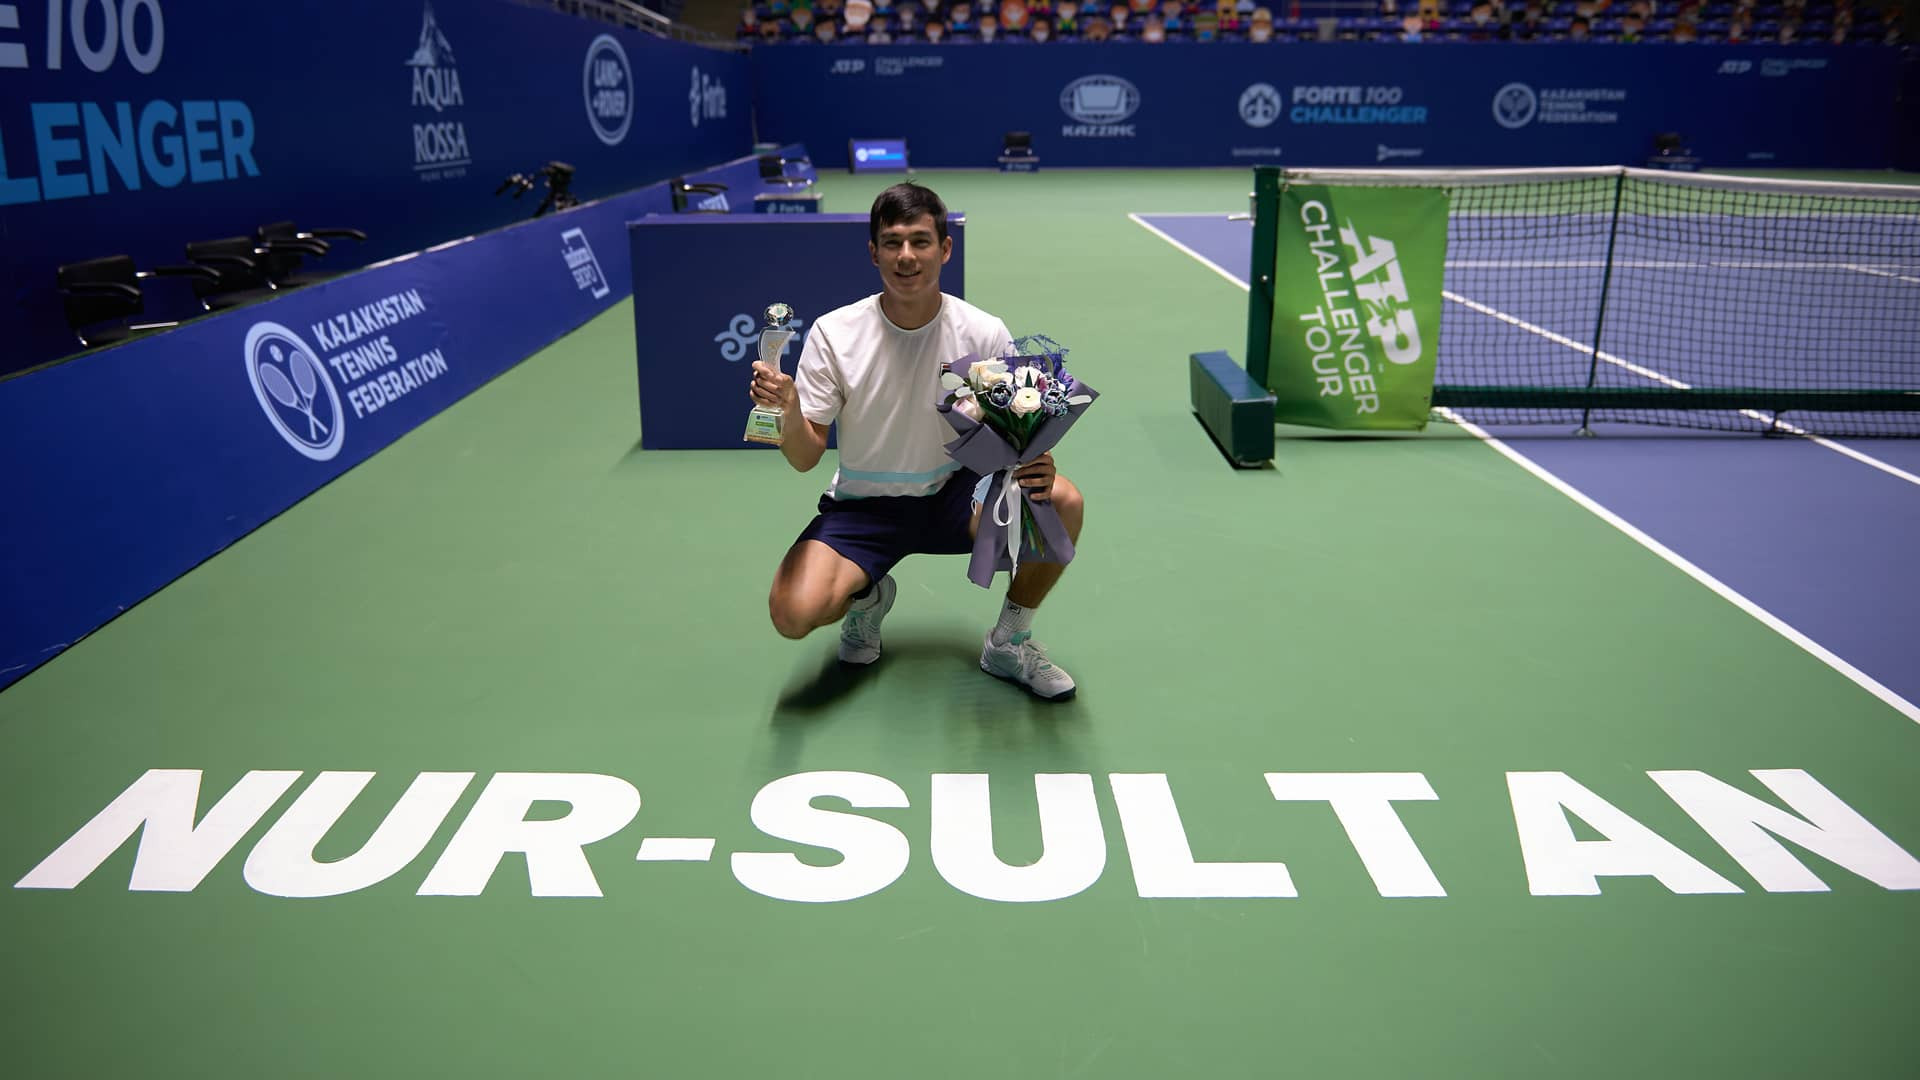 https://www.atptour.com/-/media/images/news/2021/02/28/23/37/nur-sultan-2021-mcdonald2.jpg